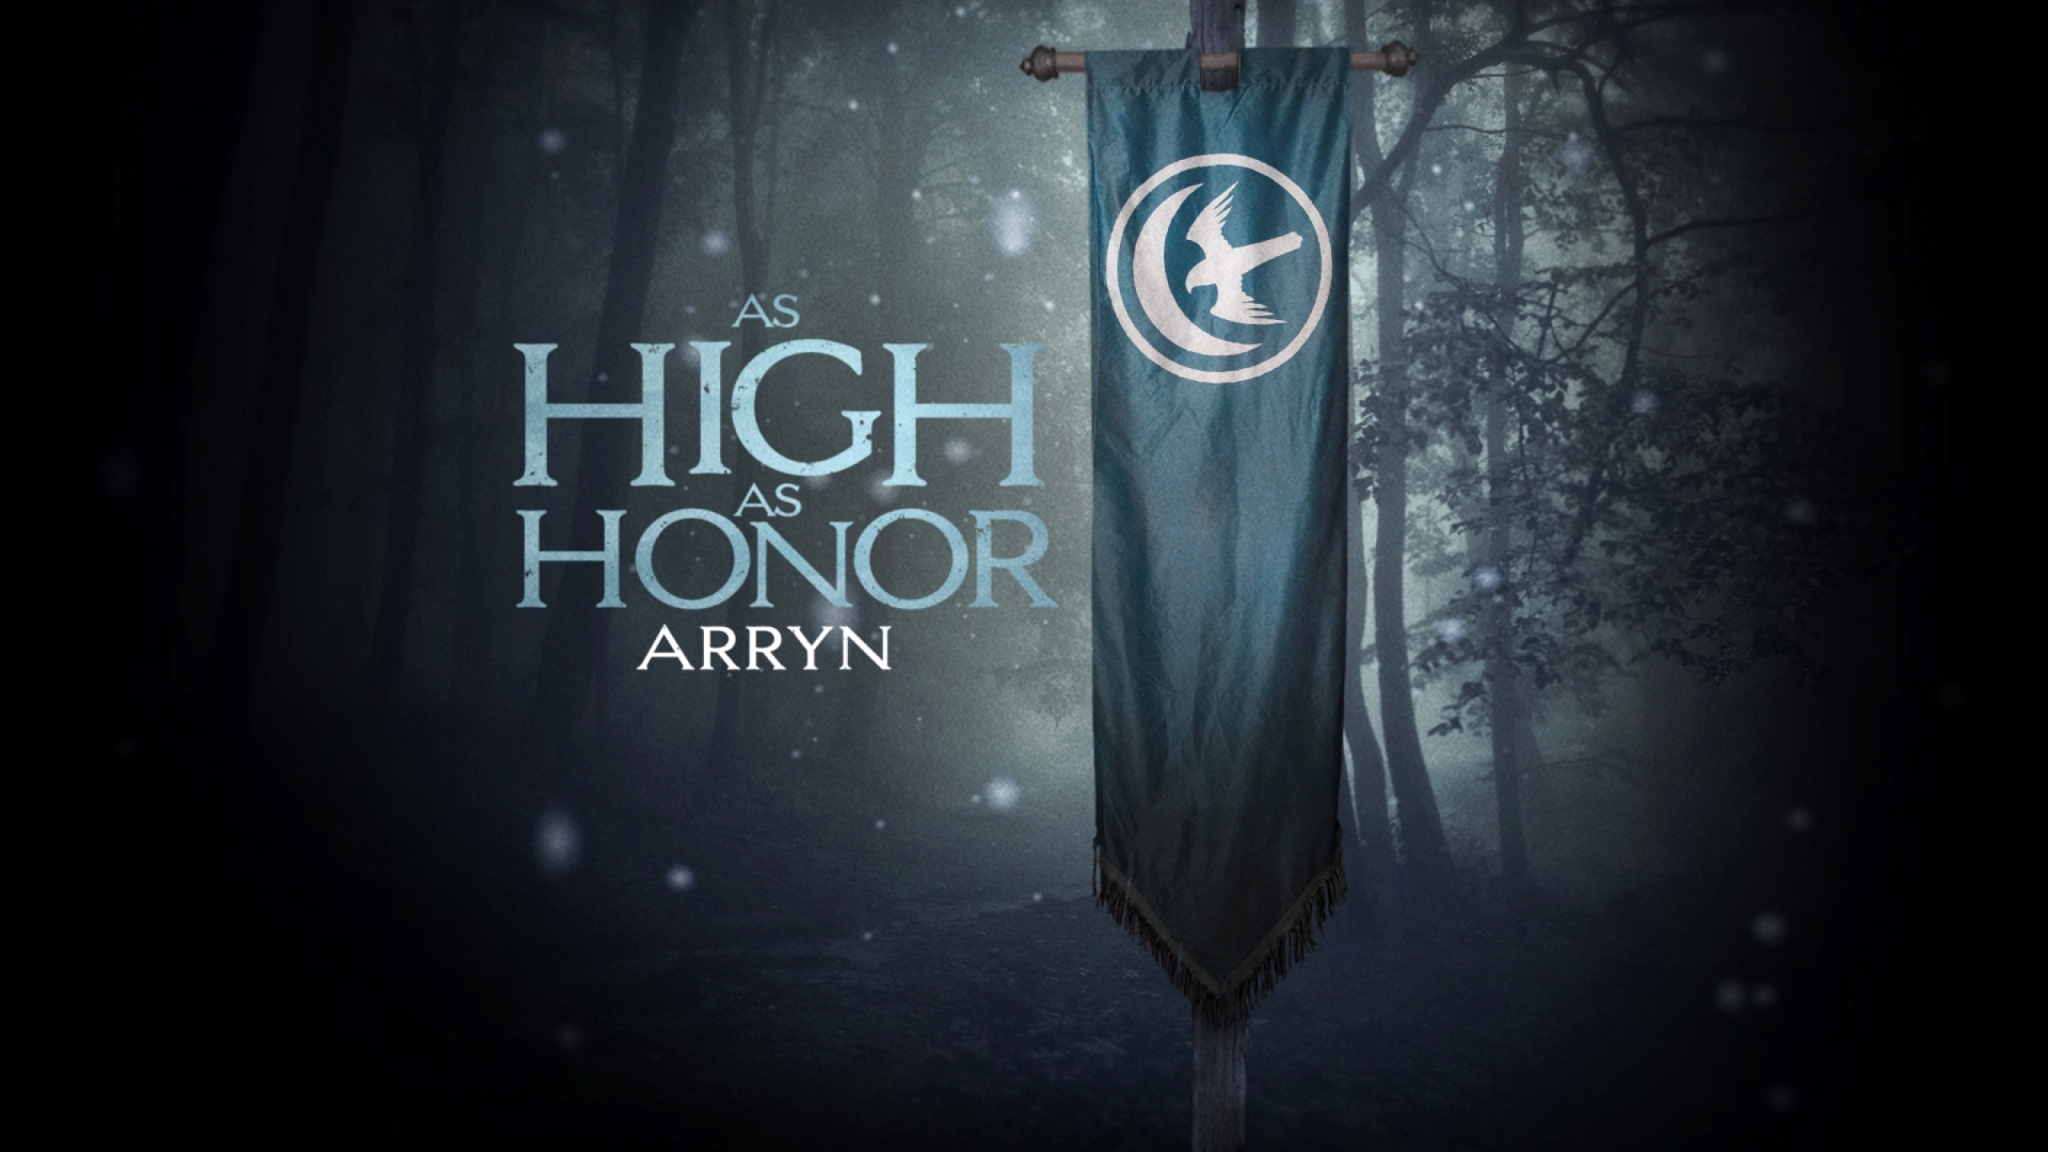 2048x1152 Game Of Thrones House Arryn Banner Hd 2048x1152